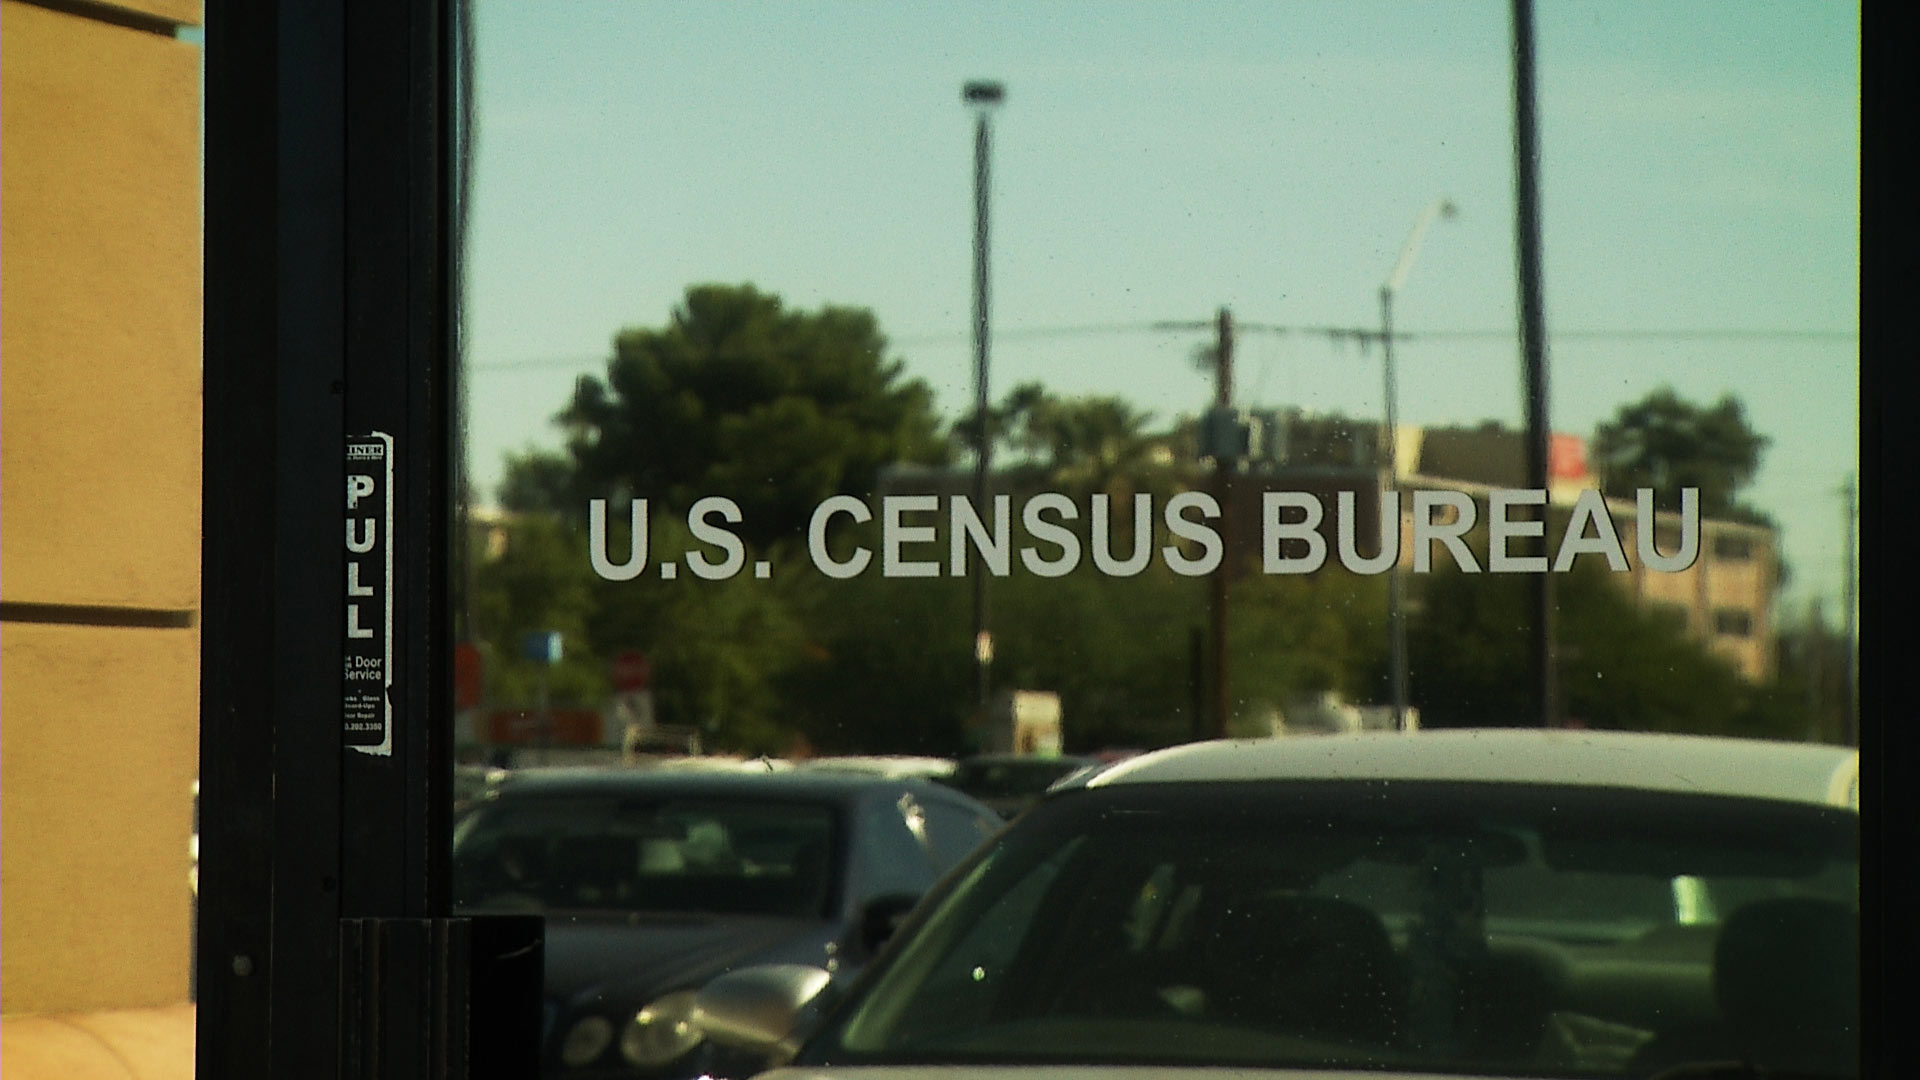 The entrance to the U.S. Census Bureau's office in Tucson.